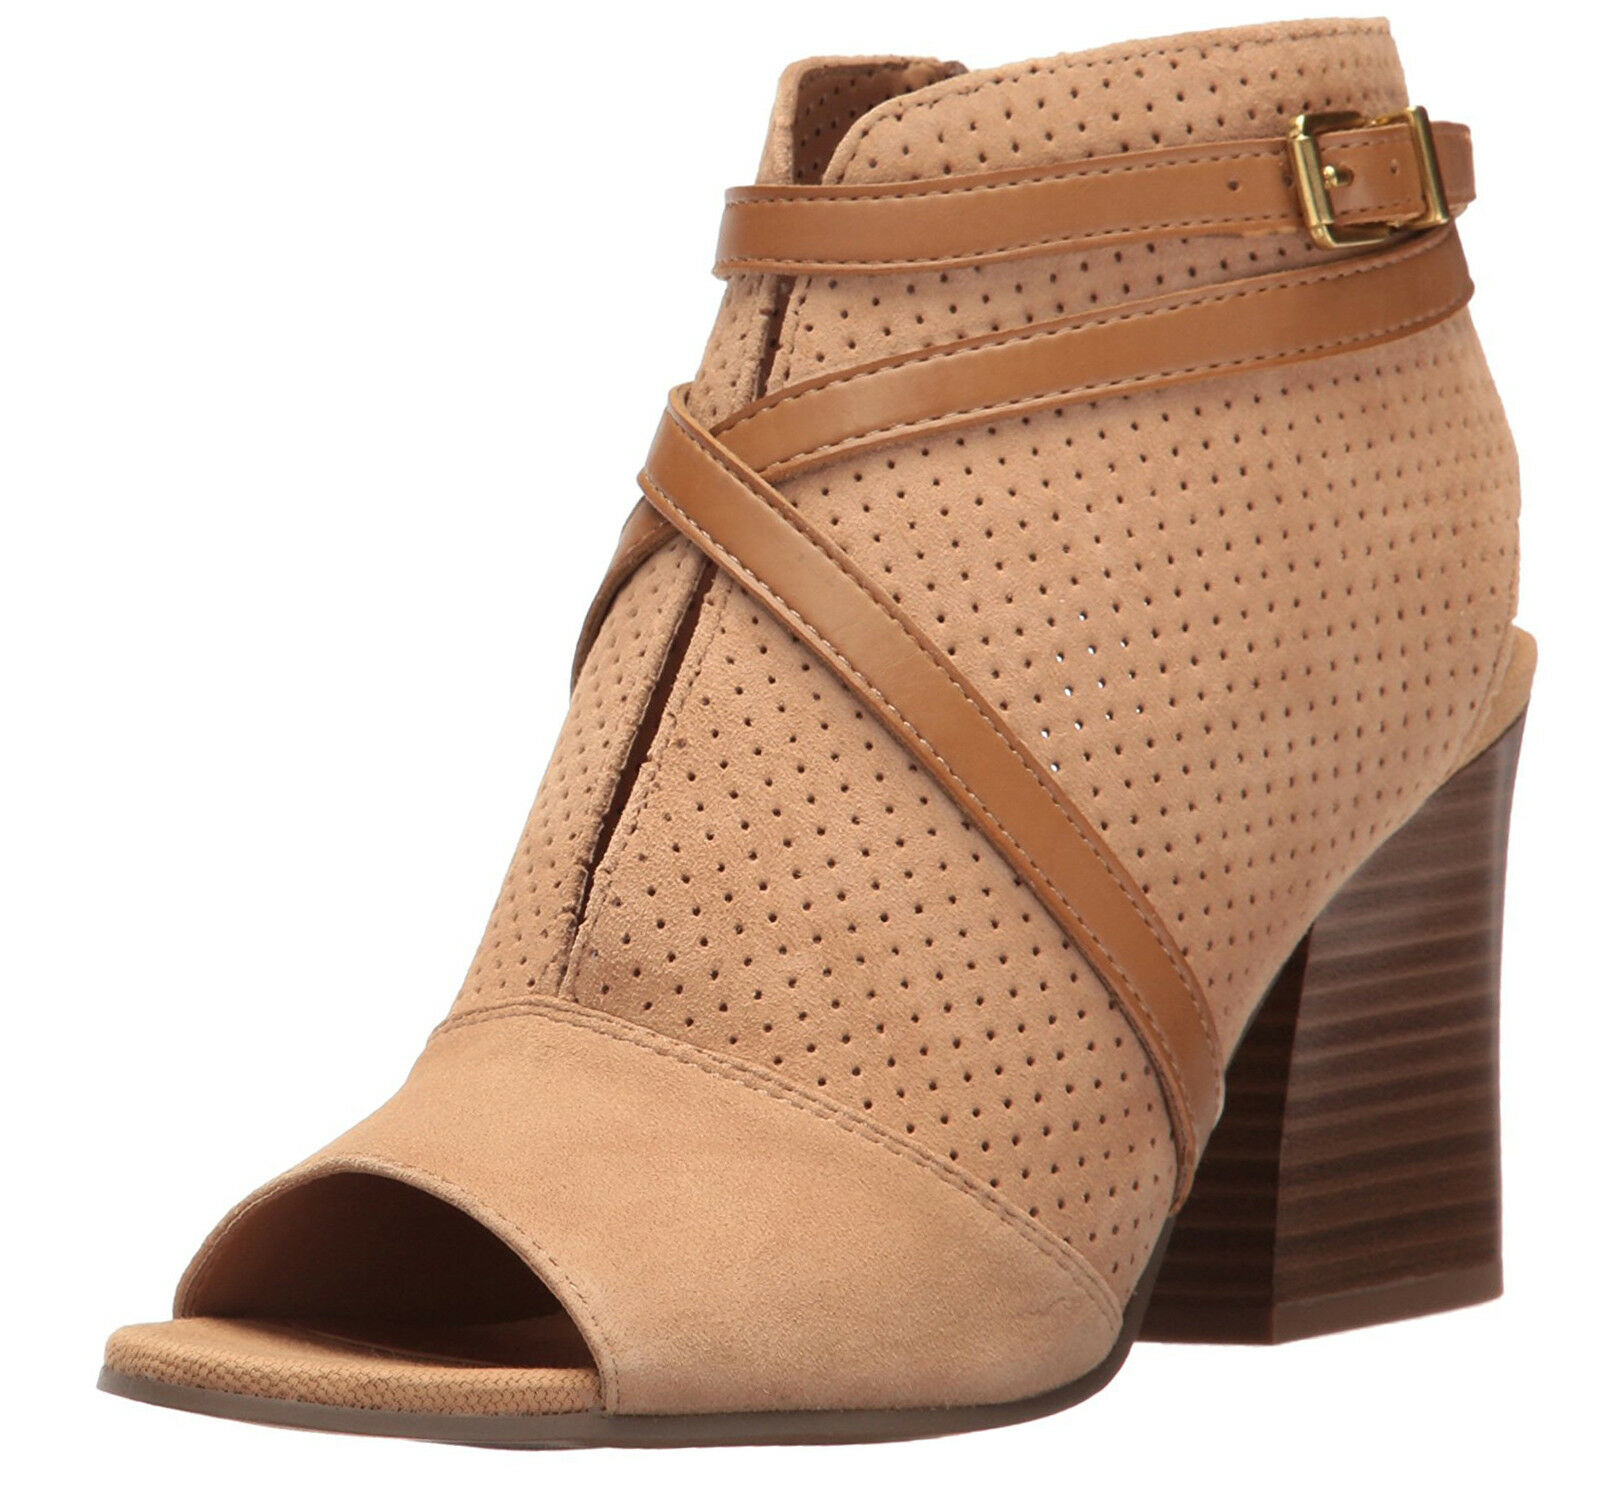 New Franco Sarto FANTANA Women Suede Booties